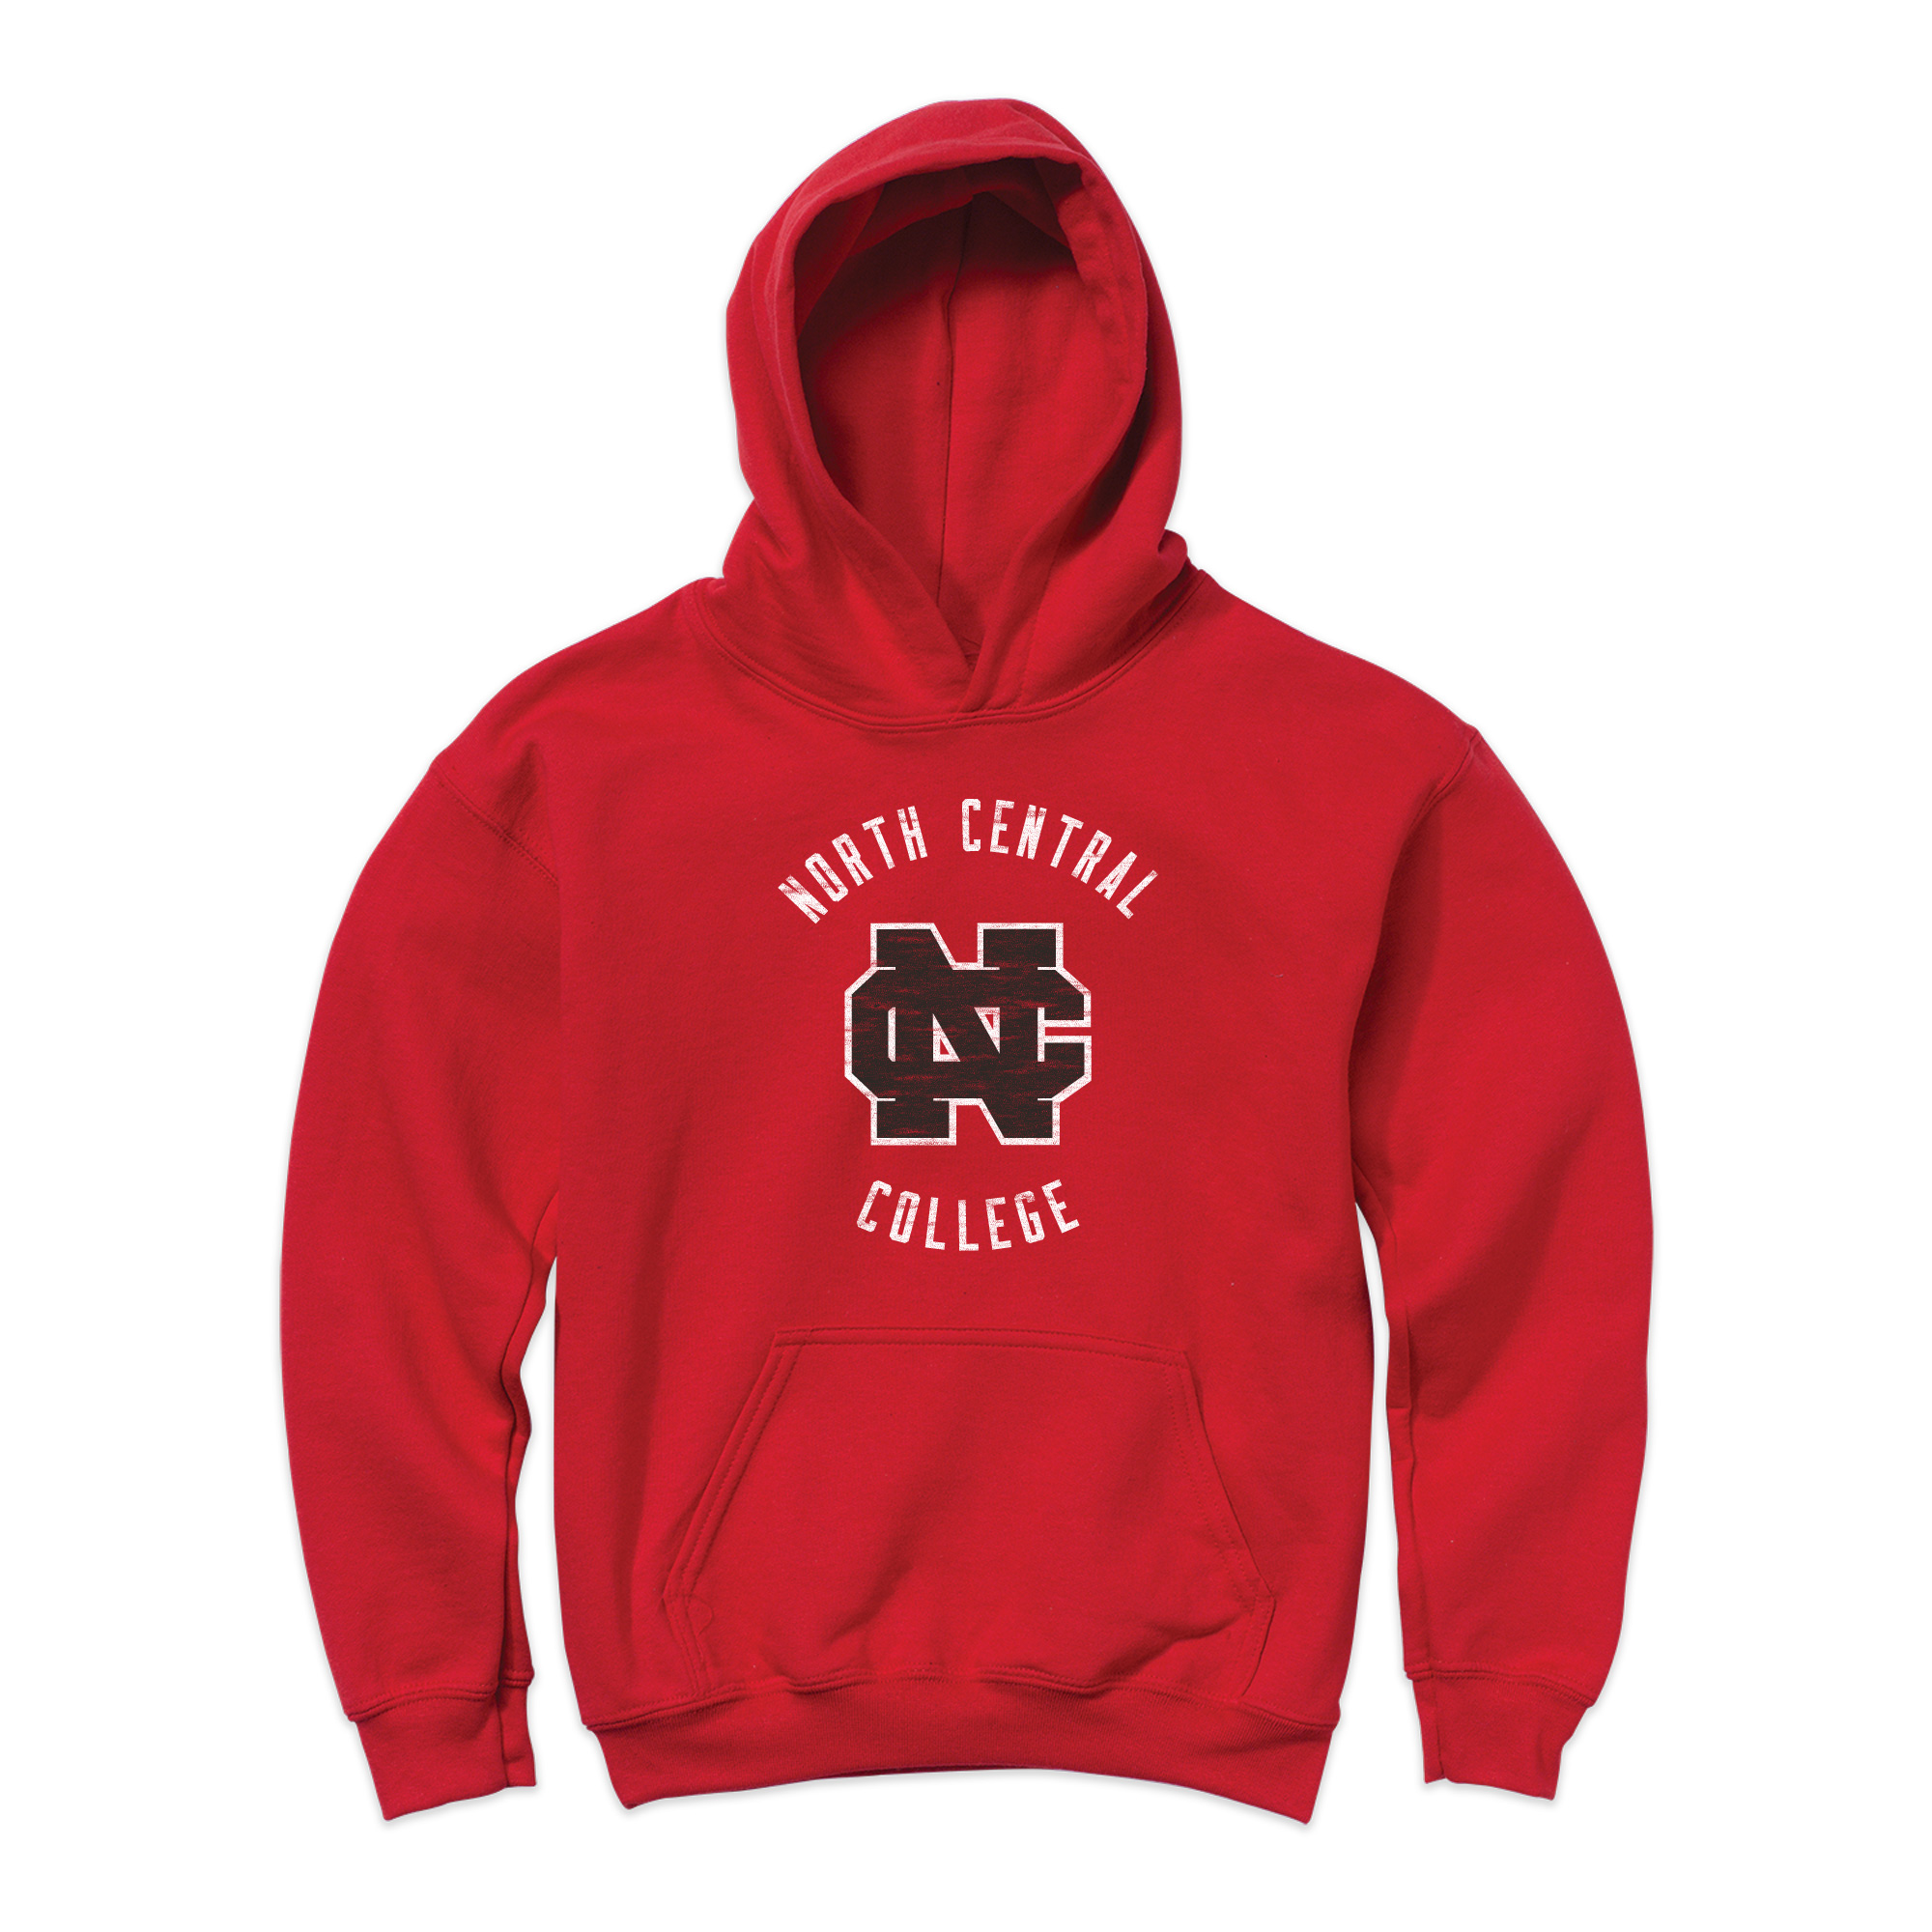 Image for the Youth Fleece Hoodie Sweatshirt by MV Sport product